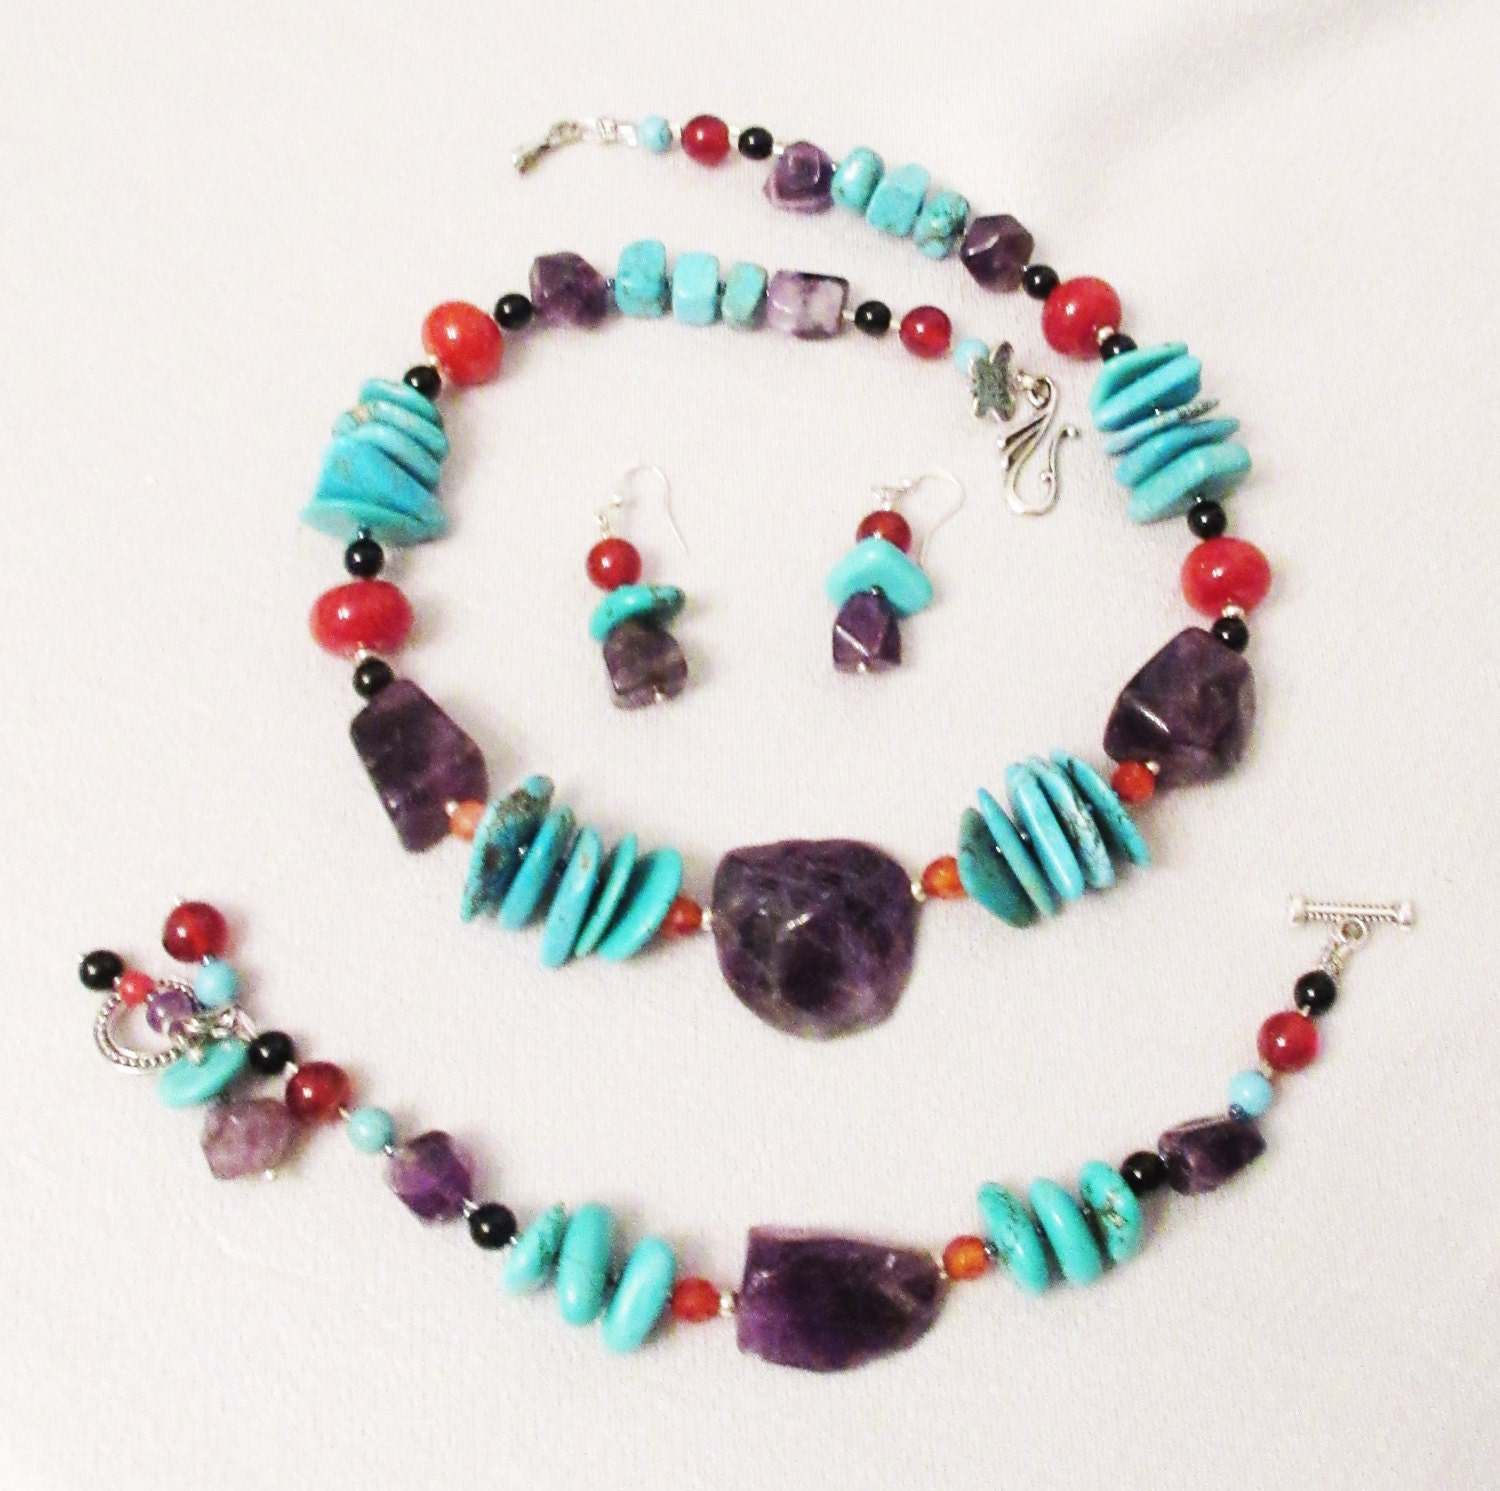 Turquoise and Carnelian Necklace Bracelet and Earring set